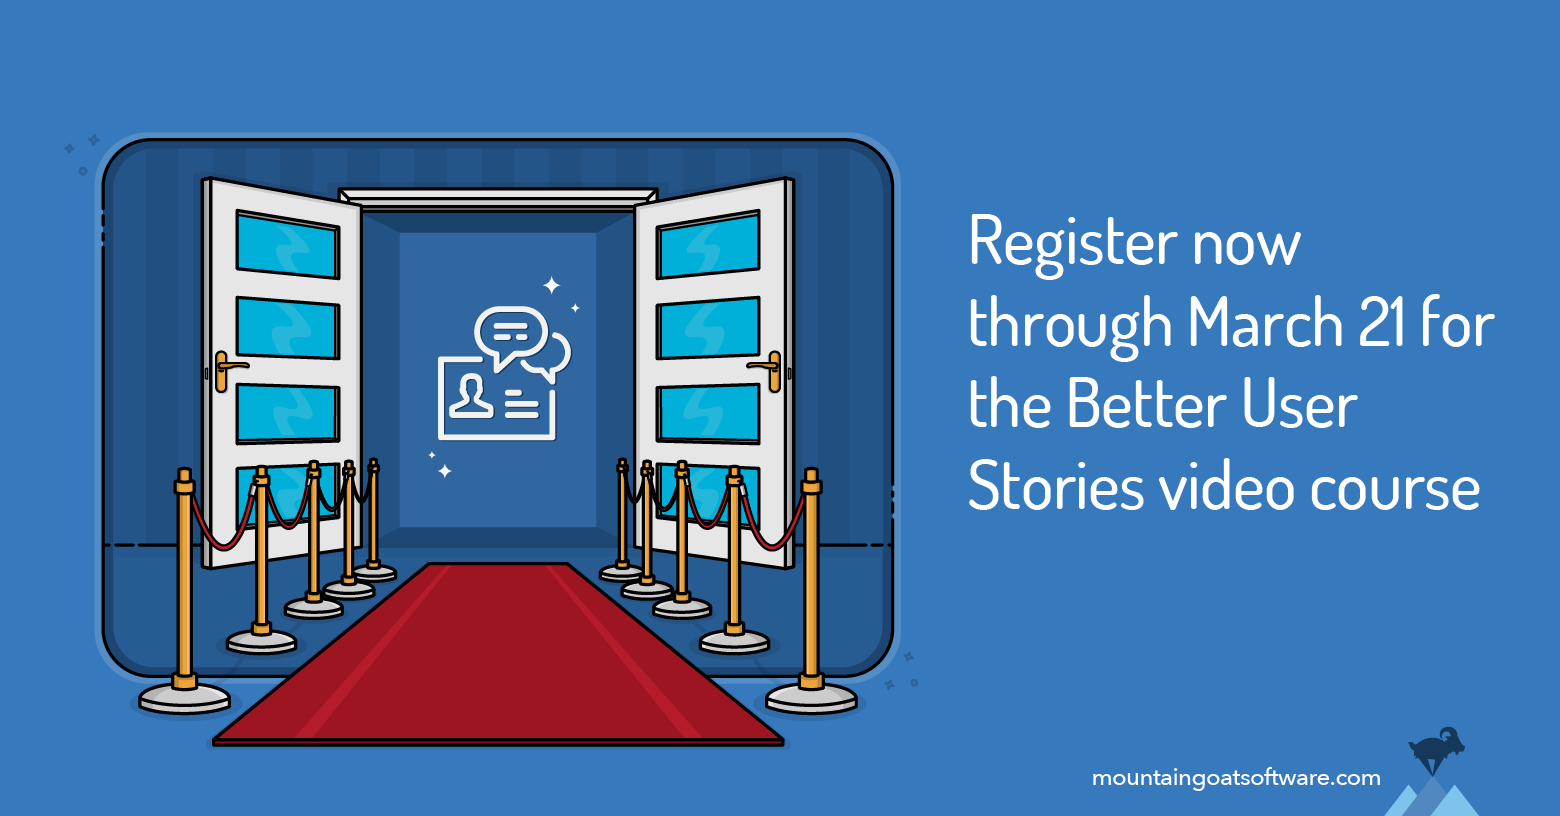 5 Results I Never Expected from the Launch of Better User Stories